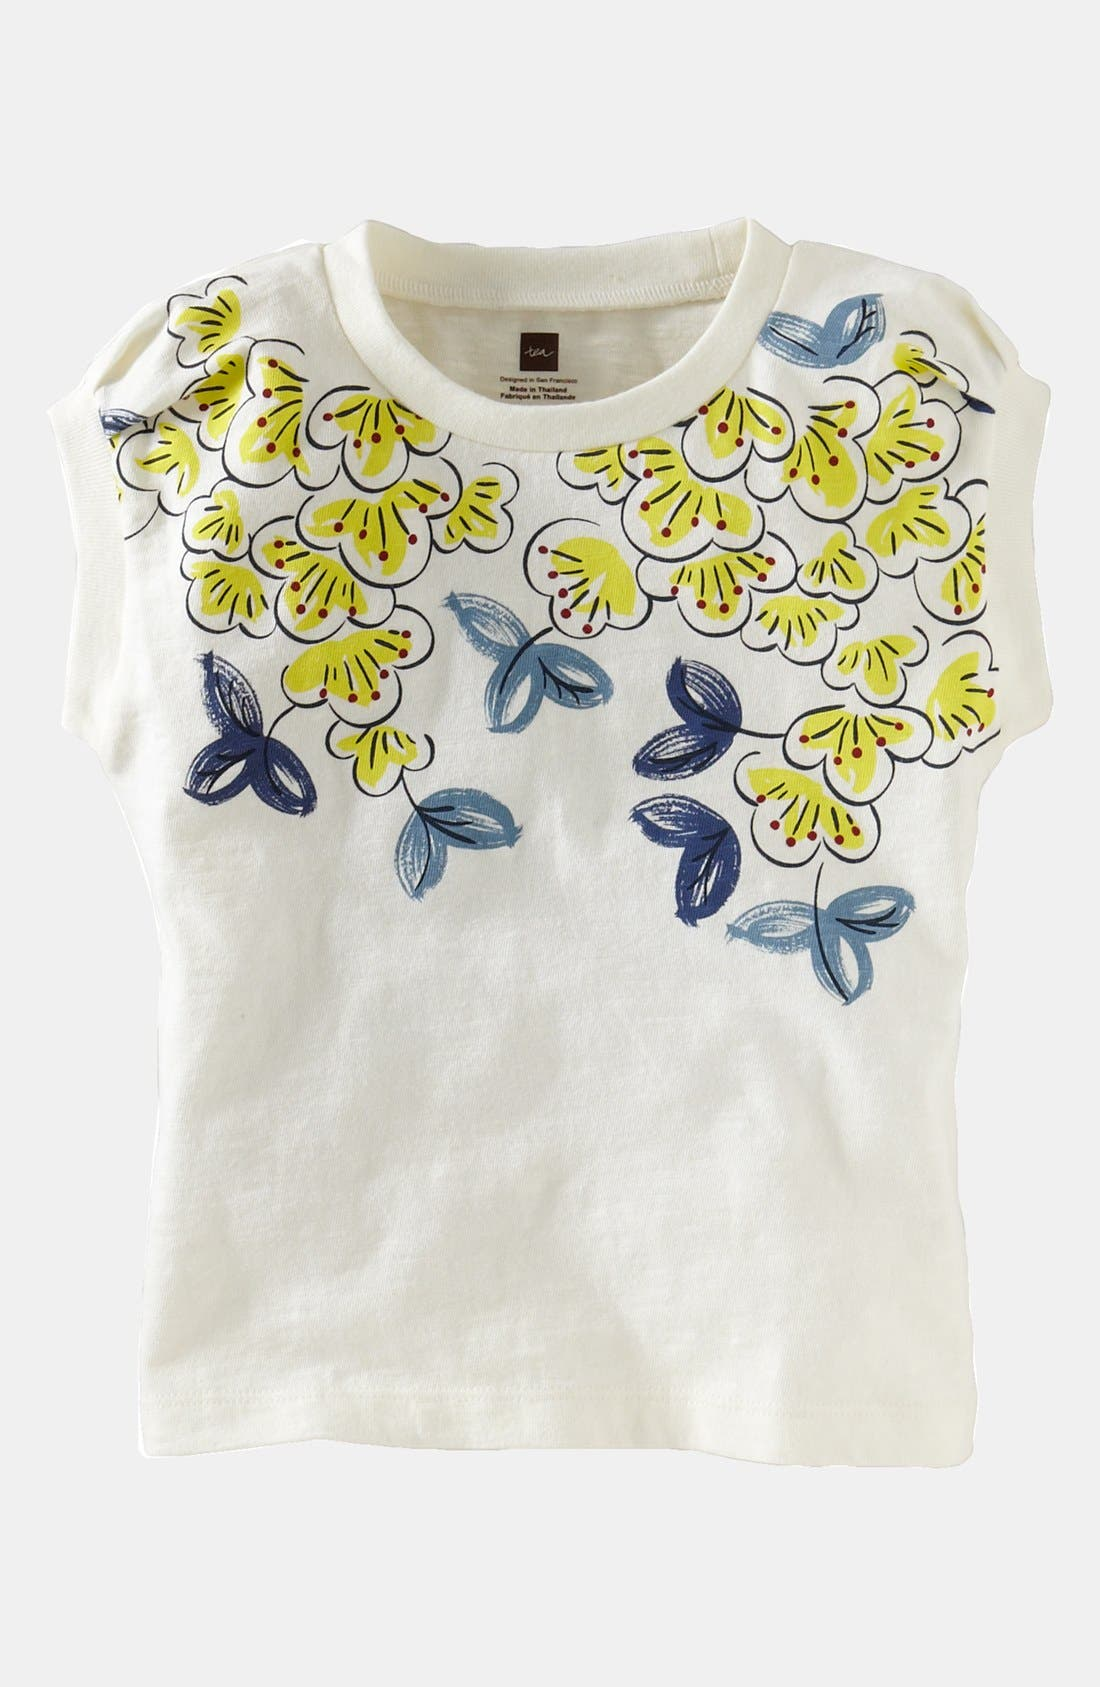 Alternate Image 1 Selected - Tea Collection 'Eastern Blossom' Tee (Baby Girls)